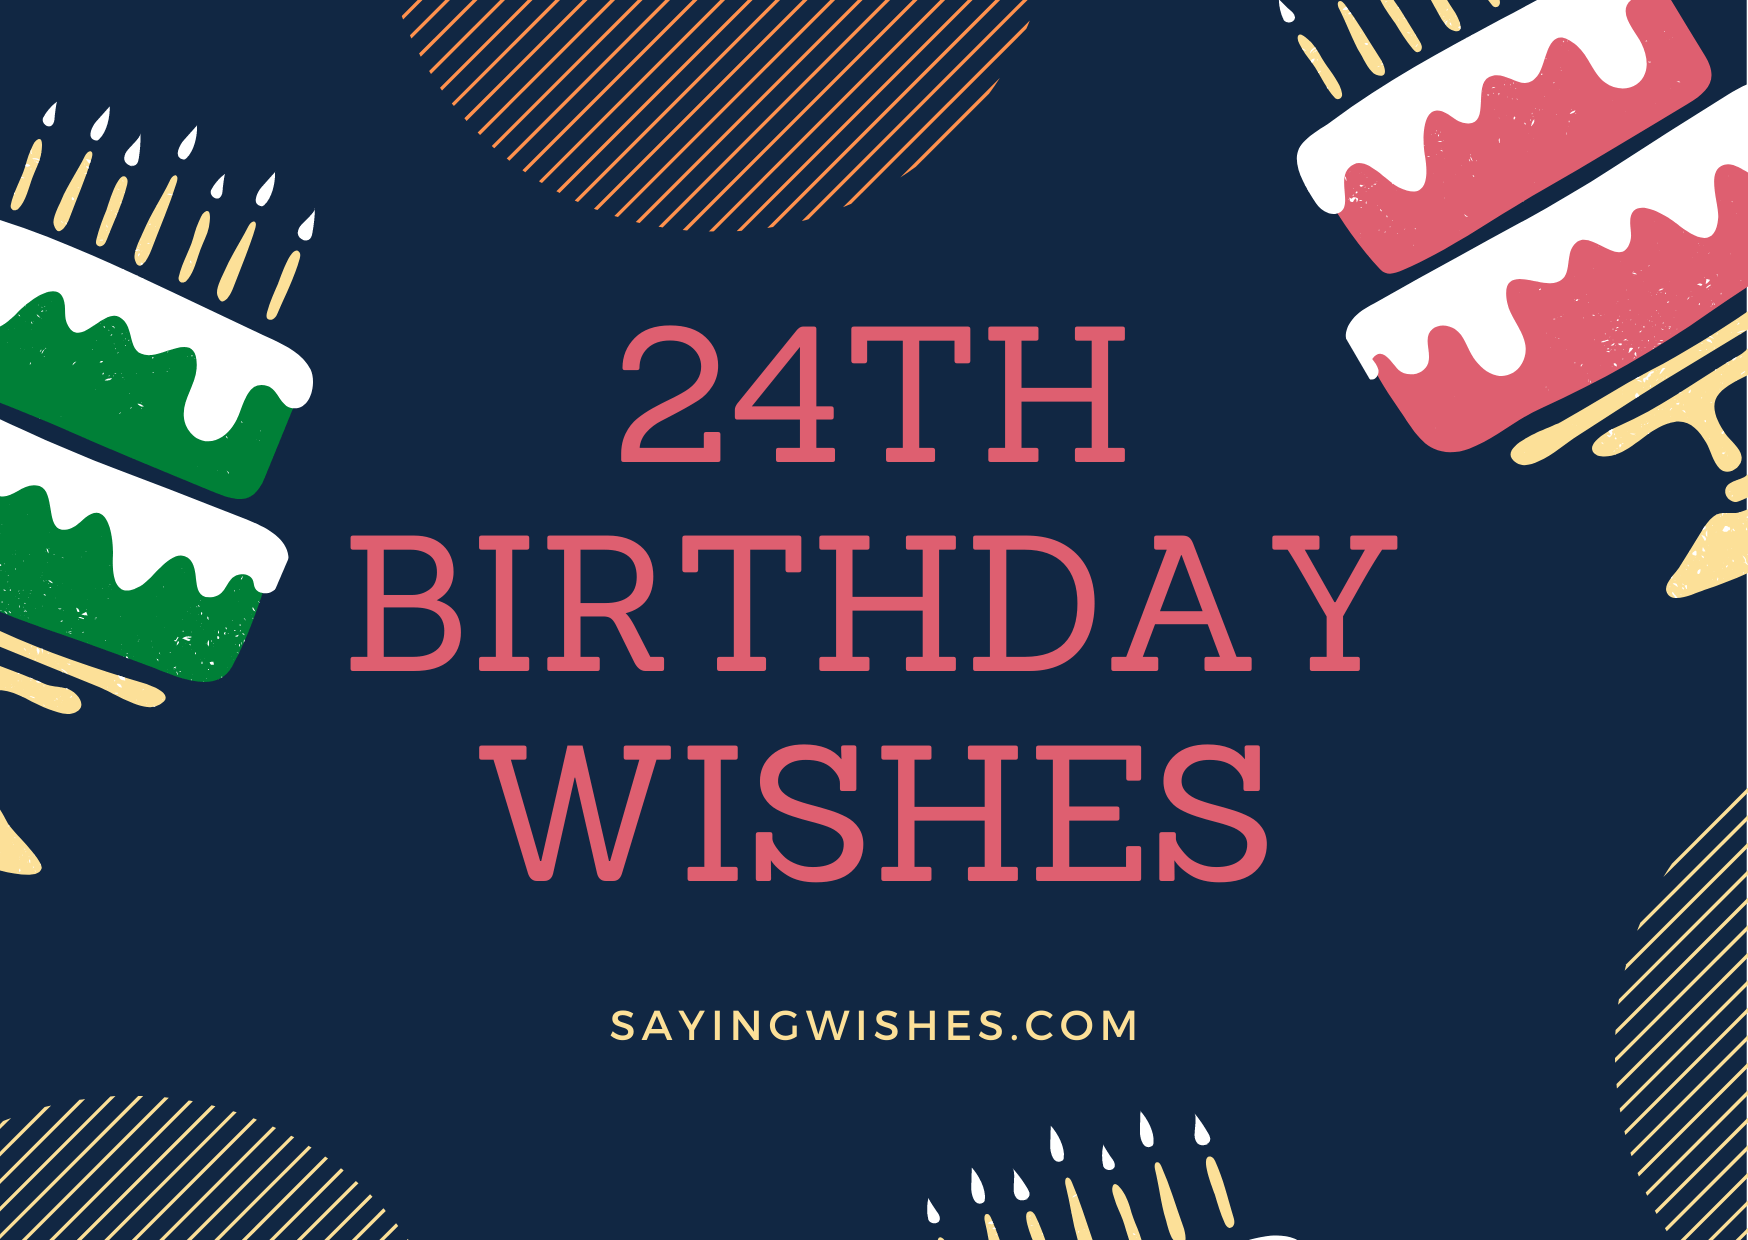 24th birthday wishes for friends